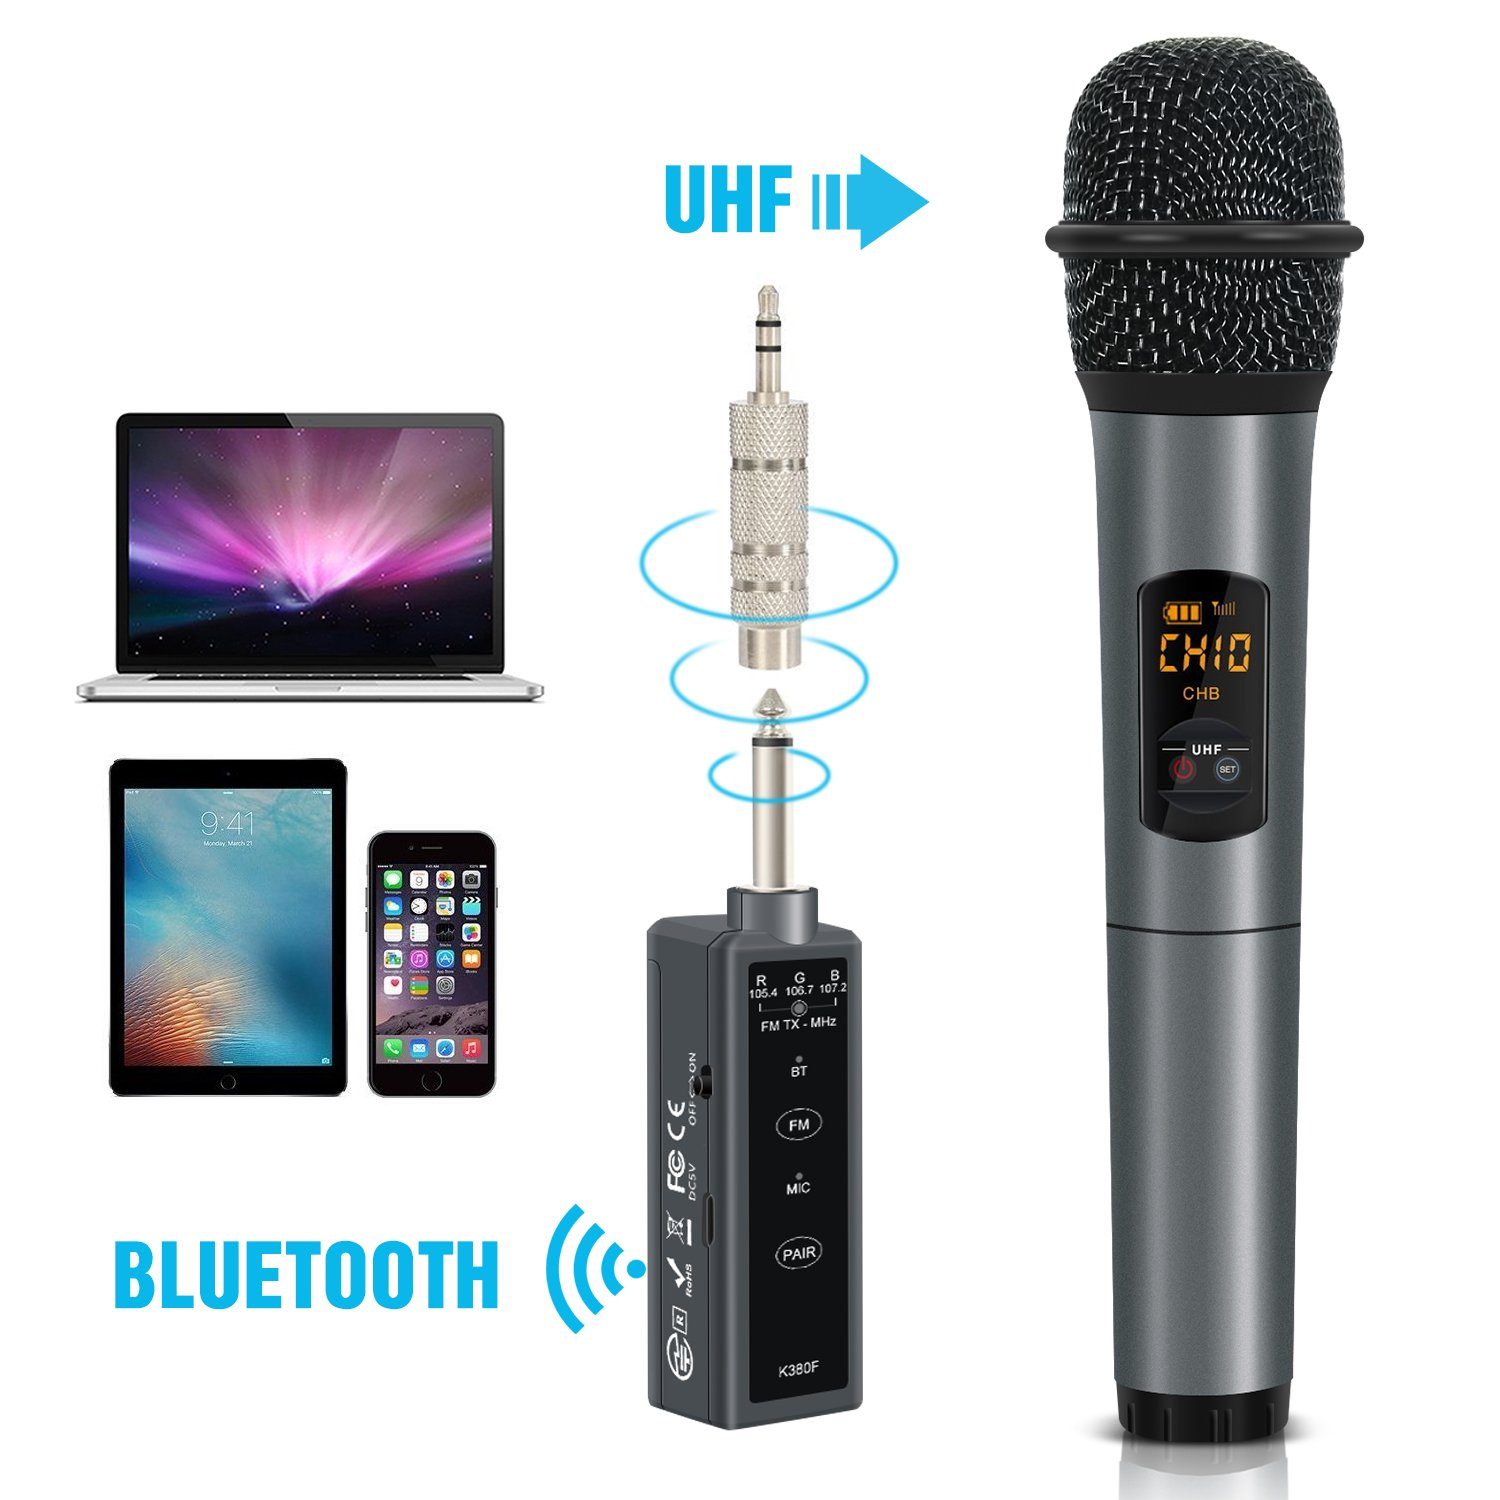 TONOR UHF Handheld Wireless Microphone with Mini Bluetooth Receiver 1/4 Output for Conference/Karaoke/Weddings/Church/Stage/Party 4336300789